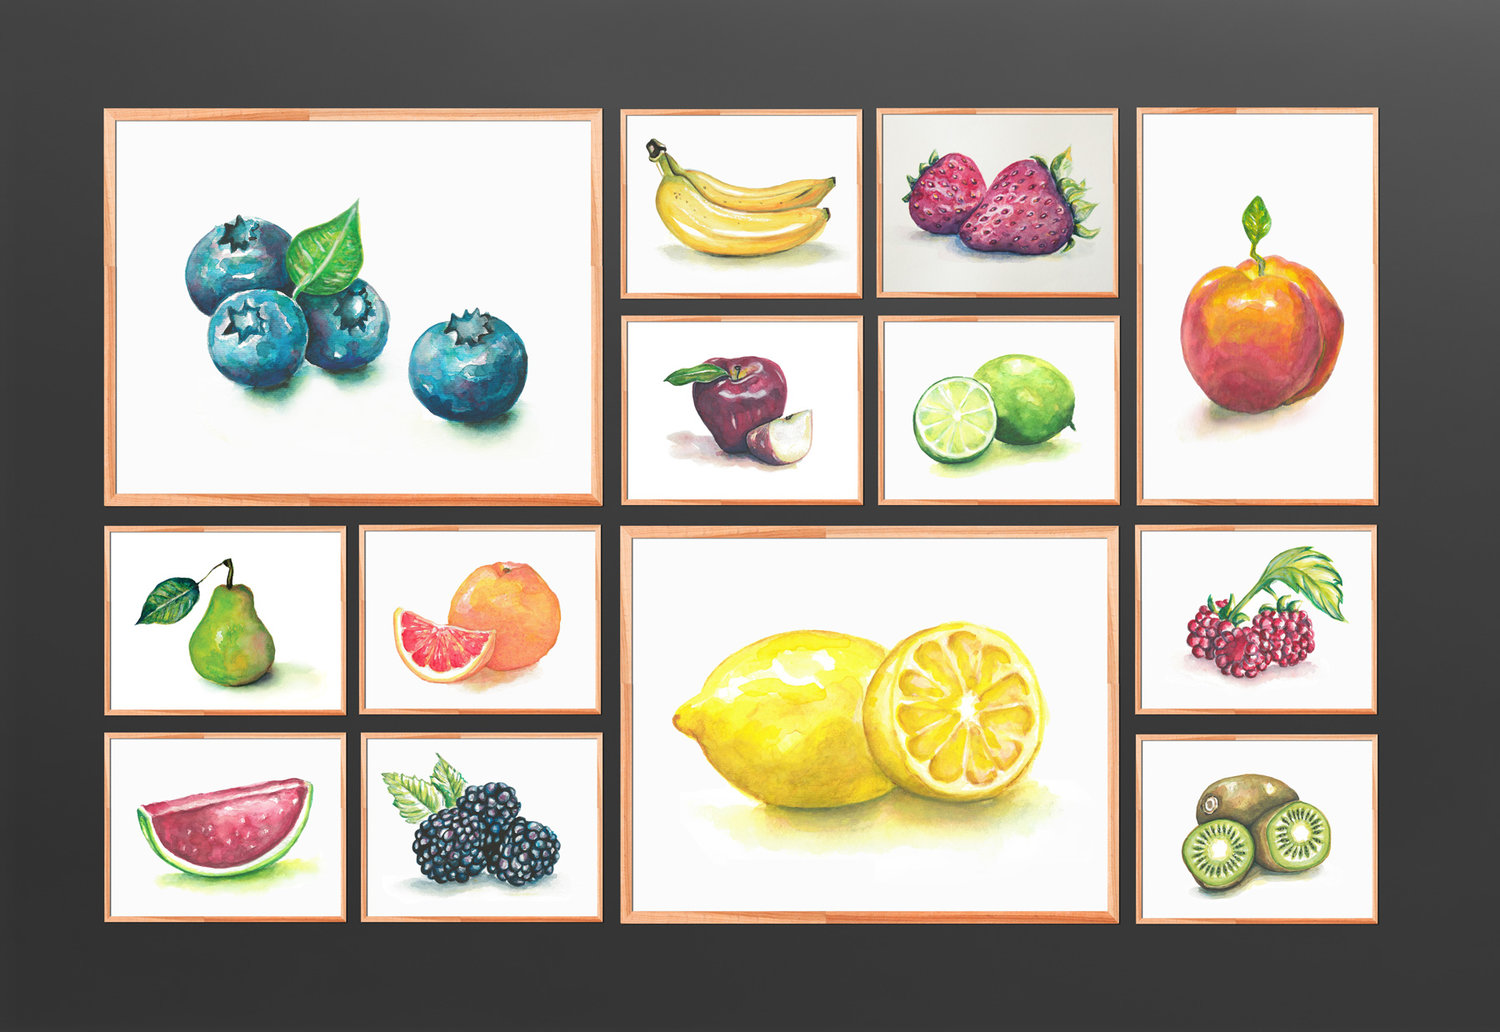 Watercolor still life series.  2011-2014 // Etsy shop and commissioned artwork.